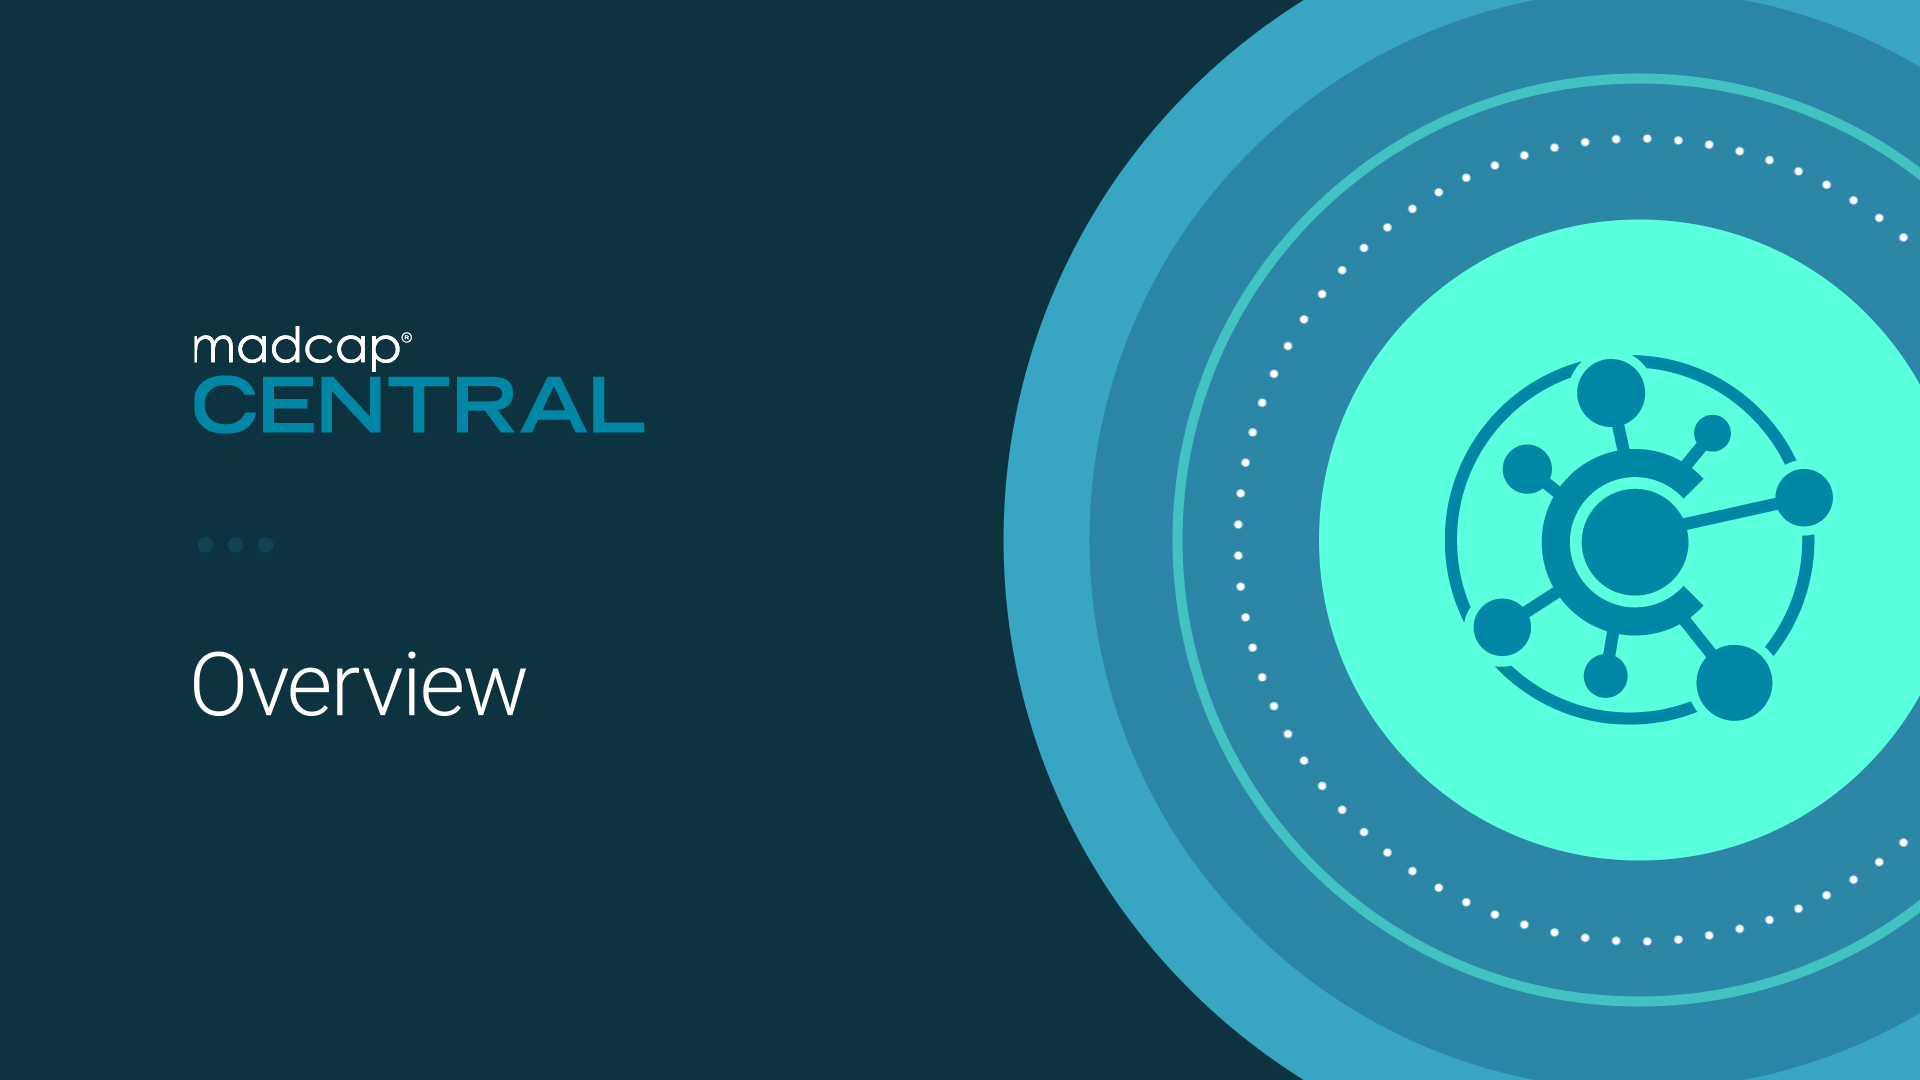 Product Demo: An Overview of MadCap Central